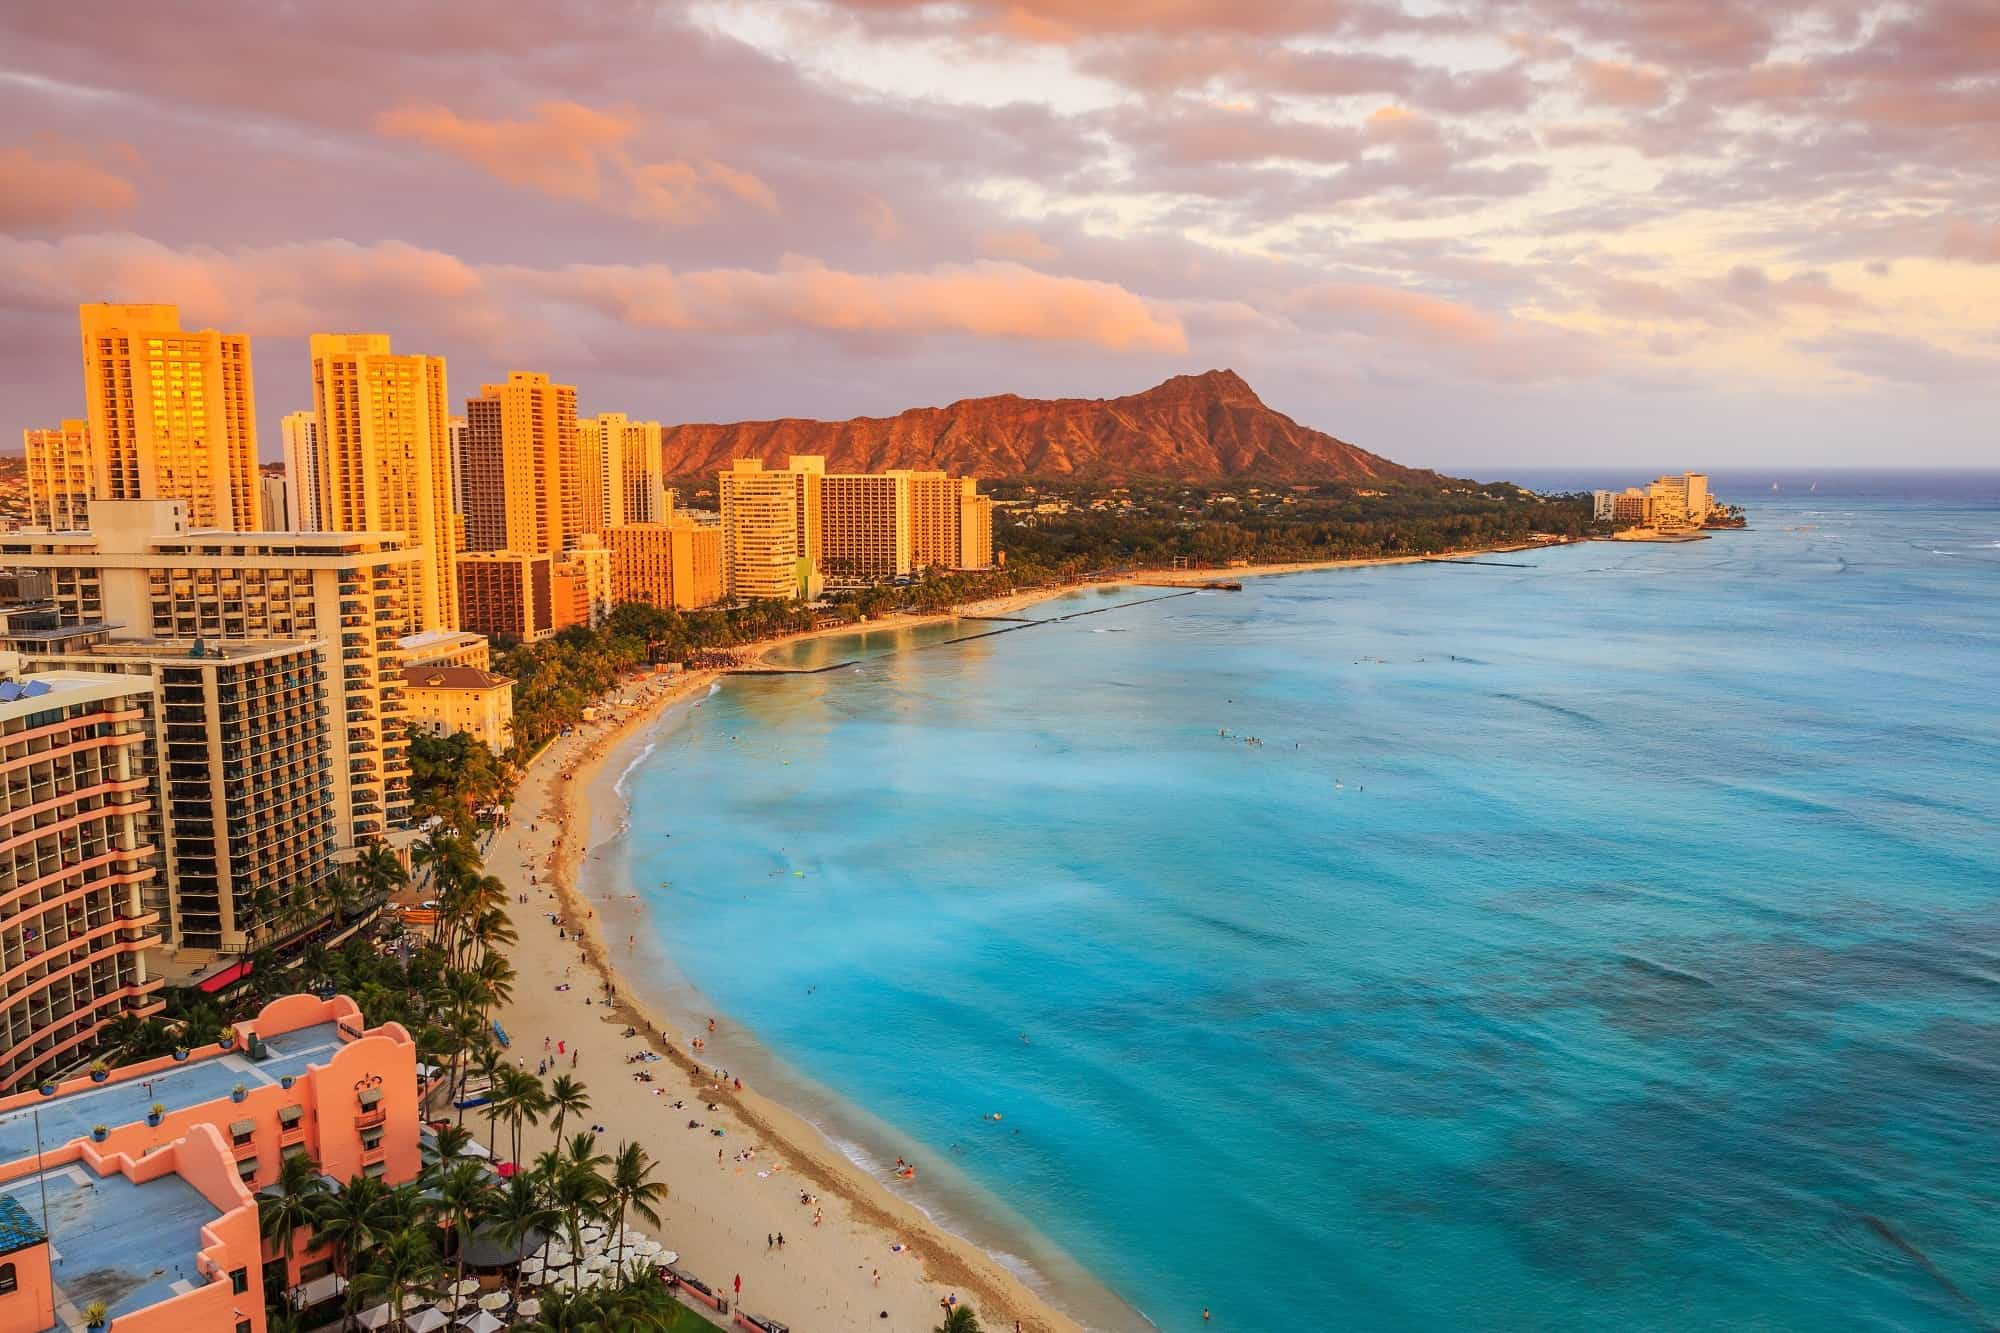 Best Hotels for Families in Oahu